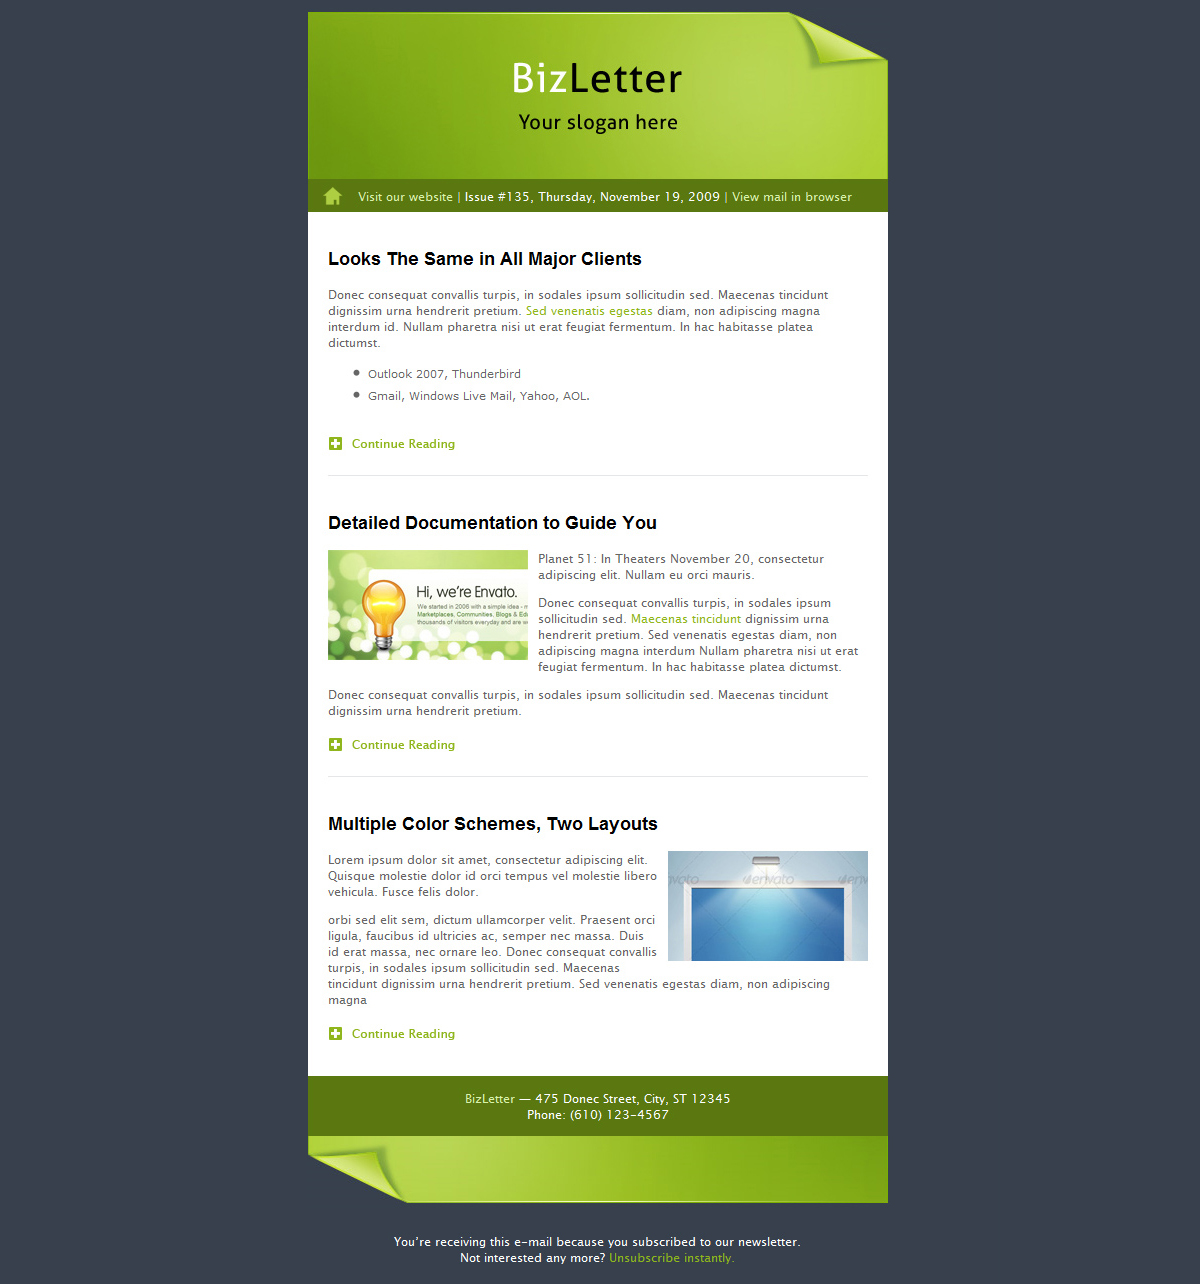 BizLetter - E-mail Template - 5 colors - The full-width version with no sidebars in the default color (green).